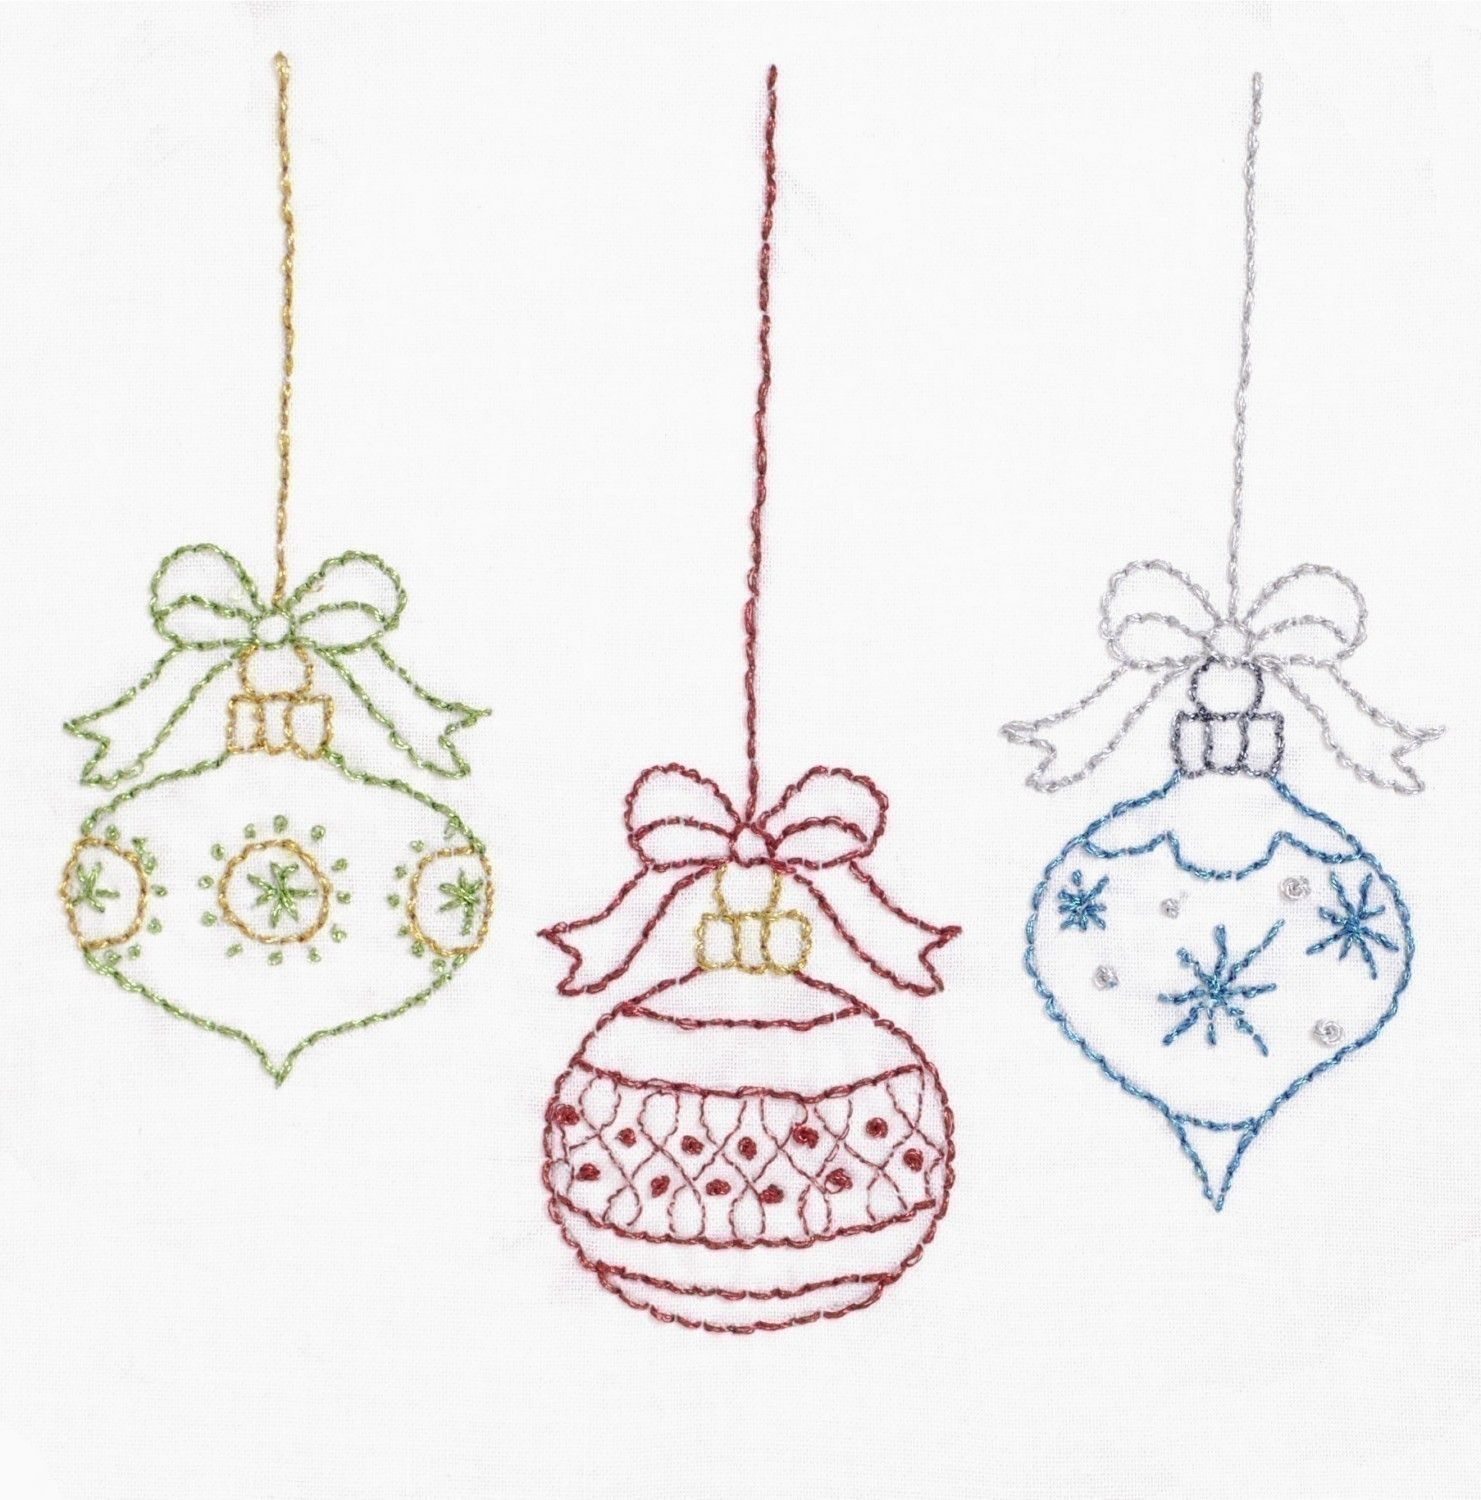 Christmas Embroidery Pattern Merry Christmas Embroidery Etsy Christmas Embroidery Patterns Christmas Embroidery Designs Paper Embroidery